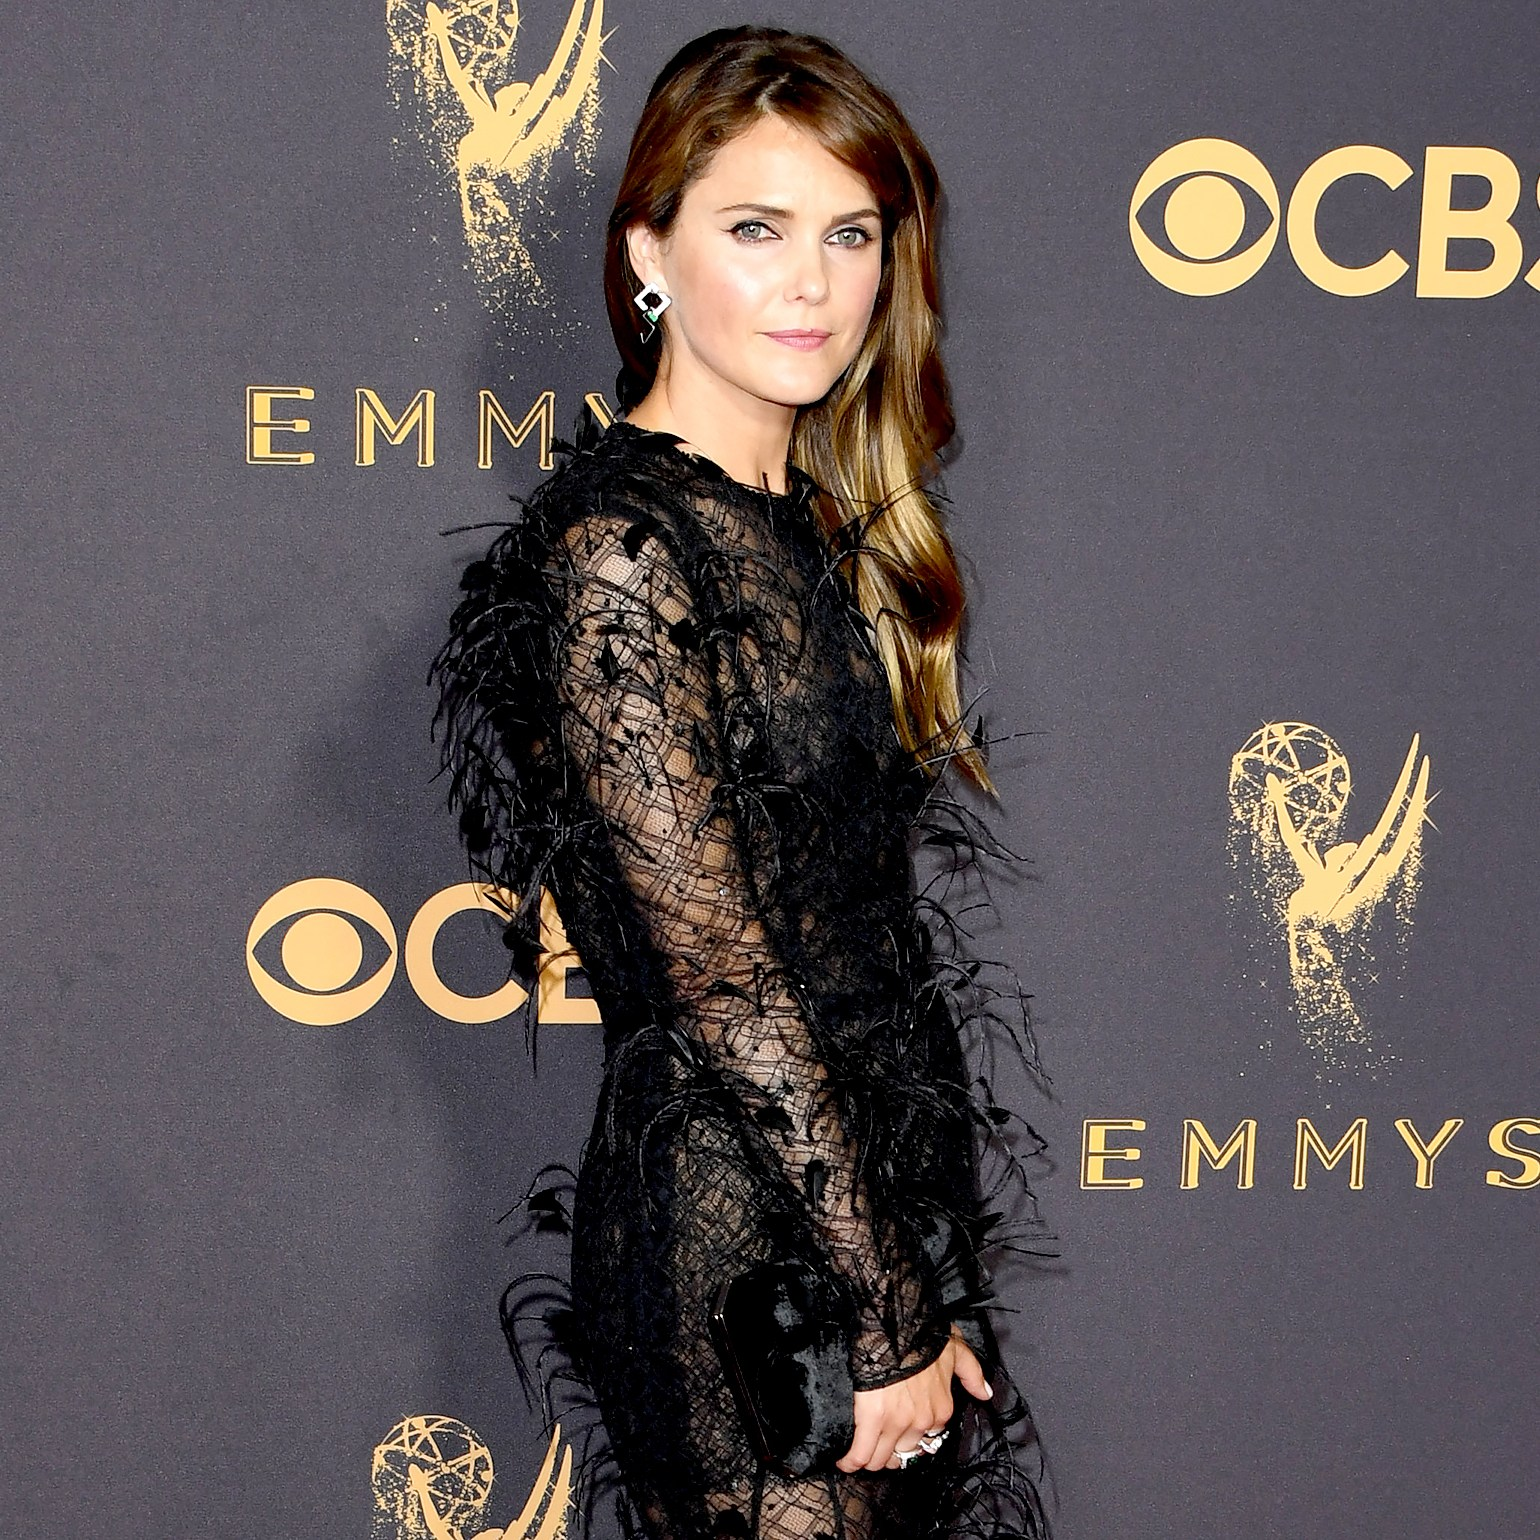 Keri Russell arrives for the 69th Emmy Awards at the Microsoft Theatre on September 17, 2017 in Los Angeles, California.